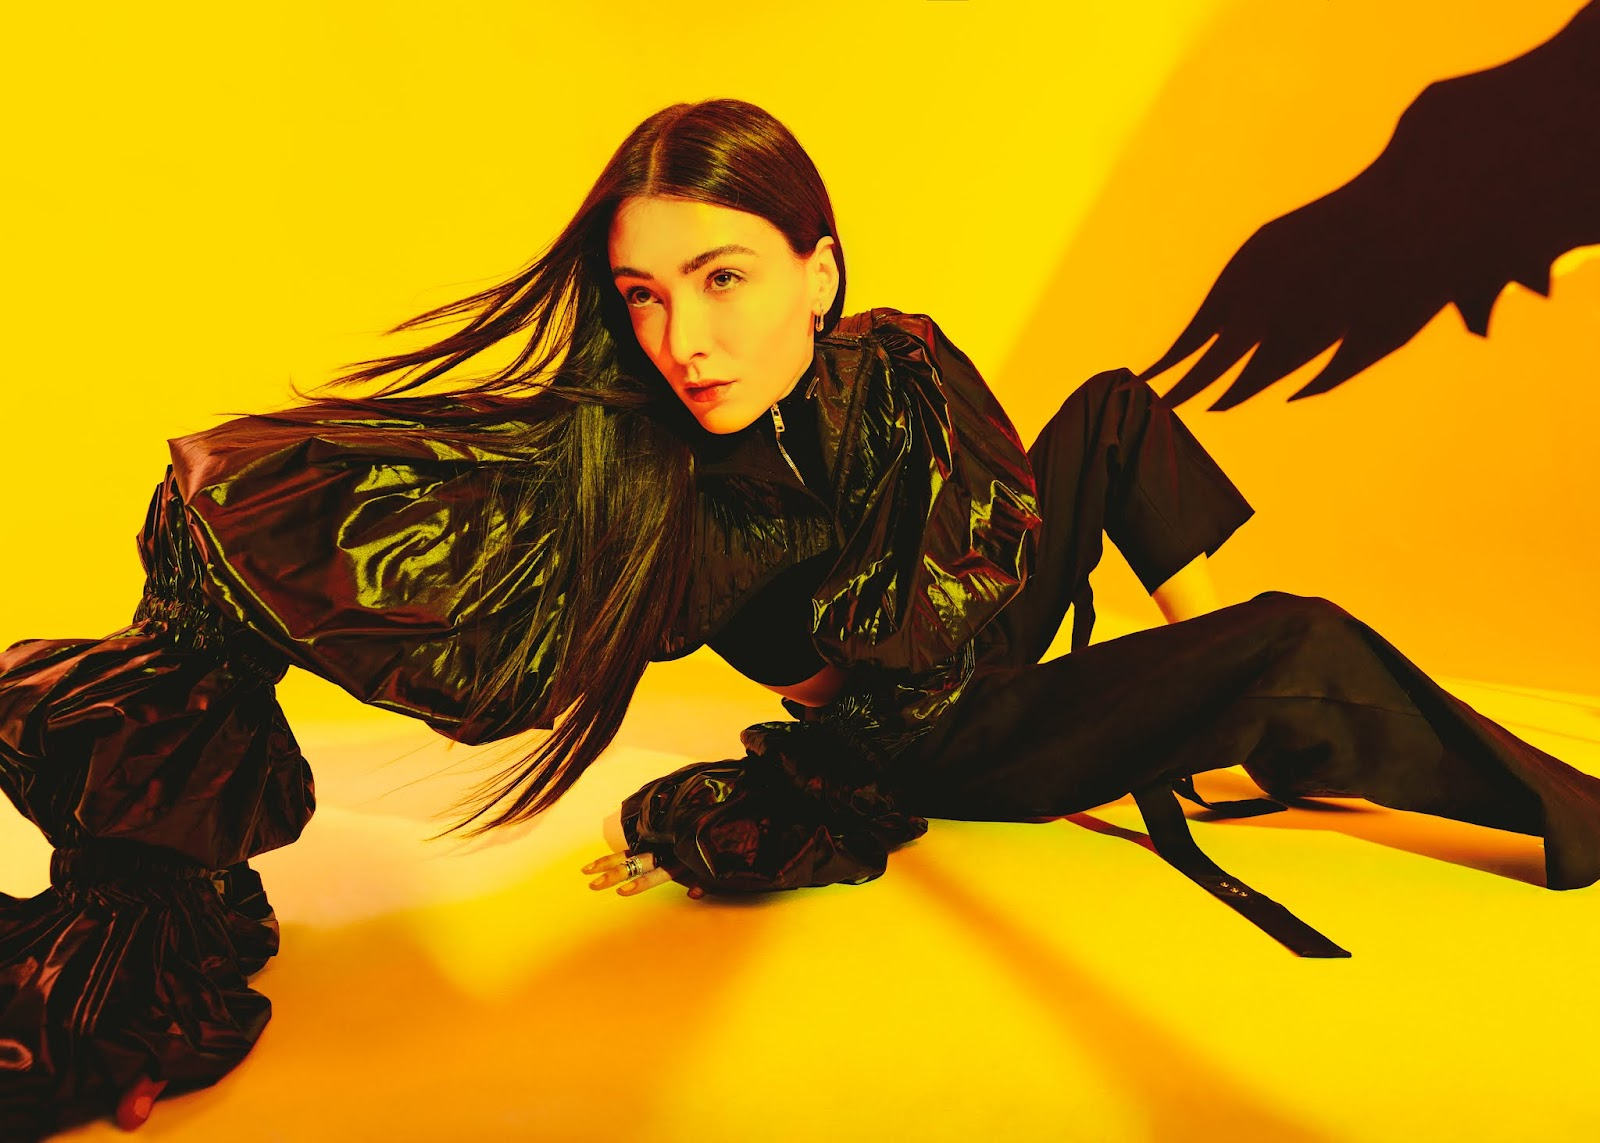 SMILE: Mar González in Numero Russia September 2021 by Ana Abril